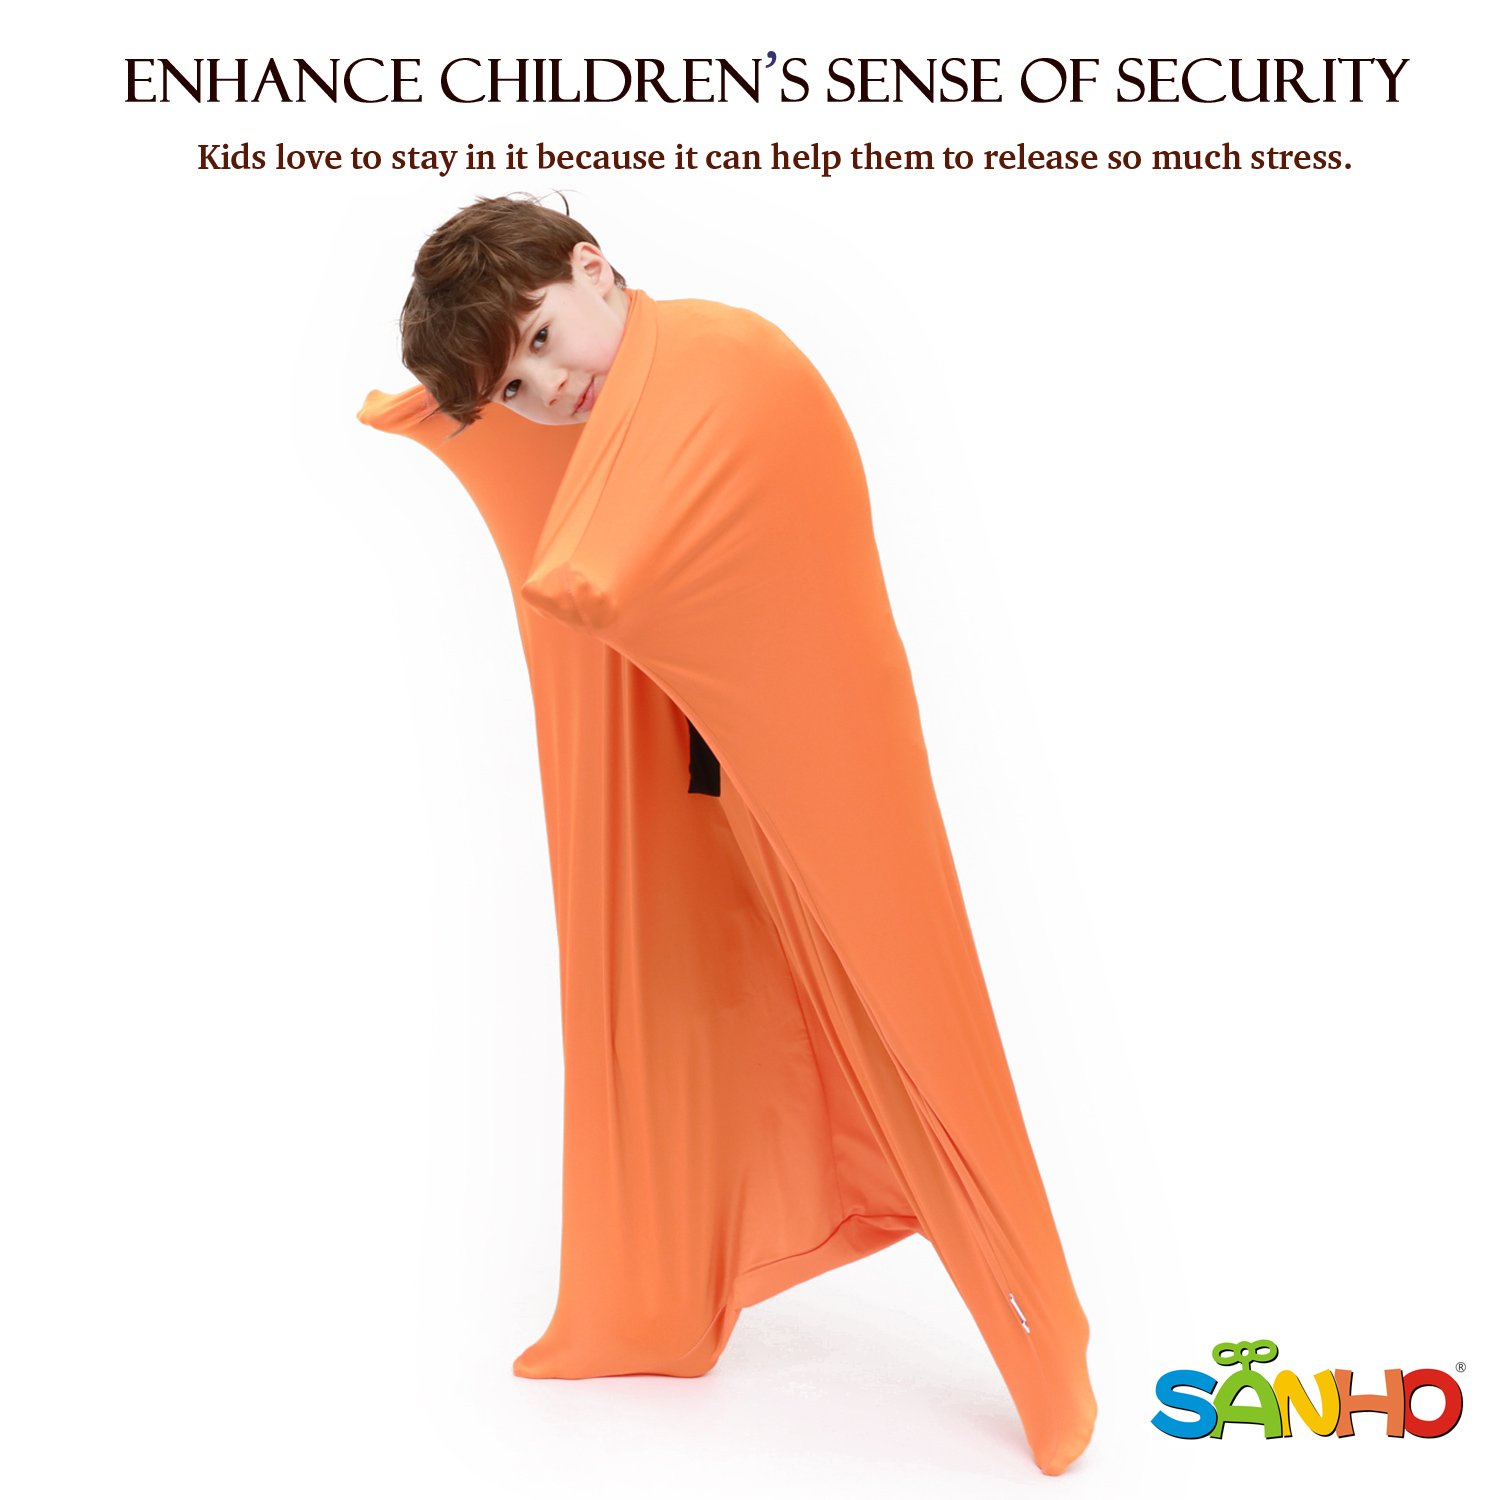 Sanho Yopo Dynamic Movement Sensory Sox, Medium,6-9 years old, 47''LX27''W Orange by Sanho Yopo (Image #6)